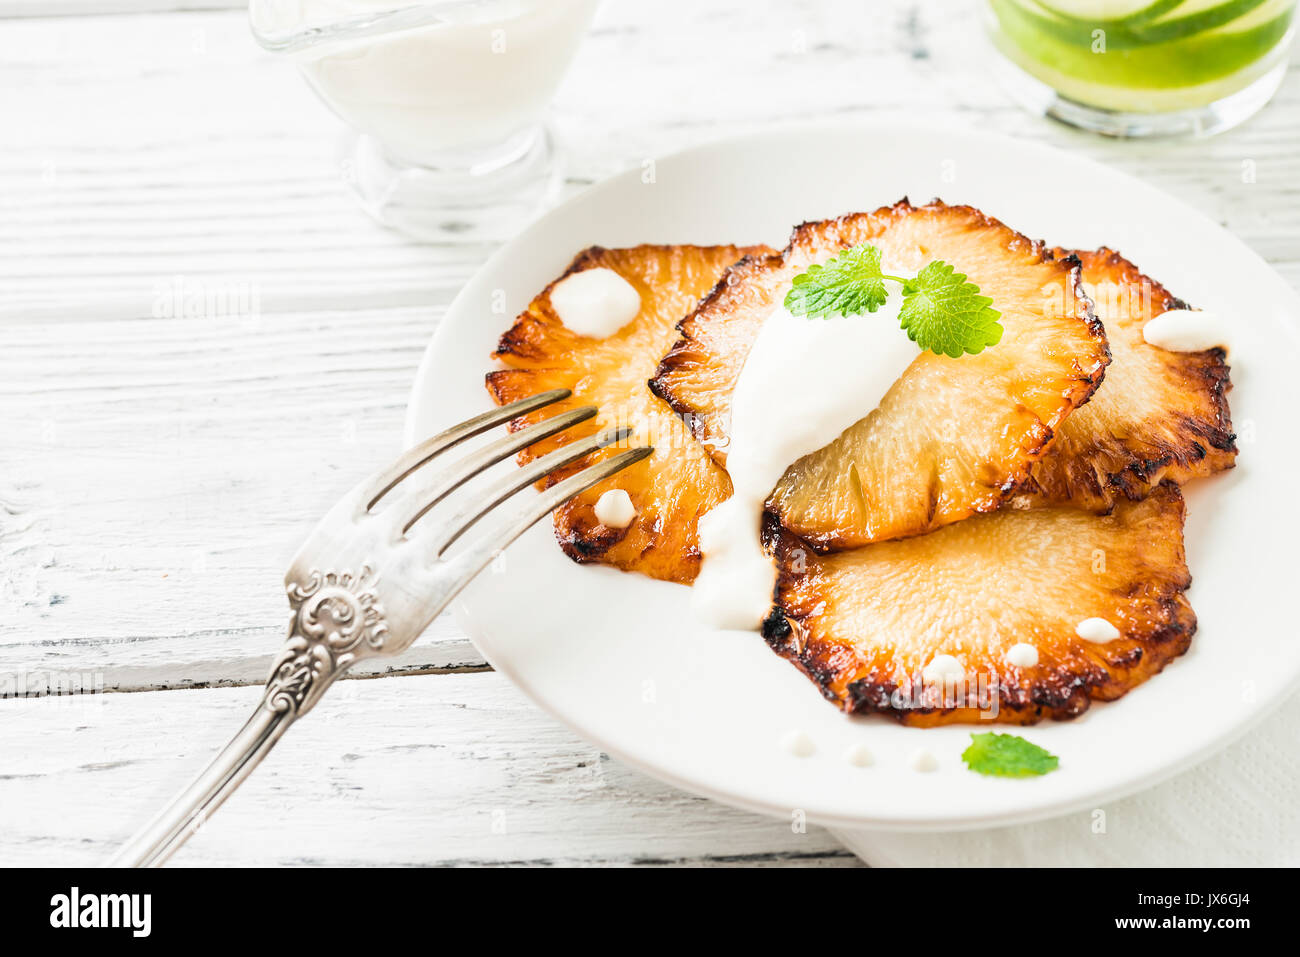 Fried pineapple slices with creme fraiche, mint in white plate on wooden background - Stock Image